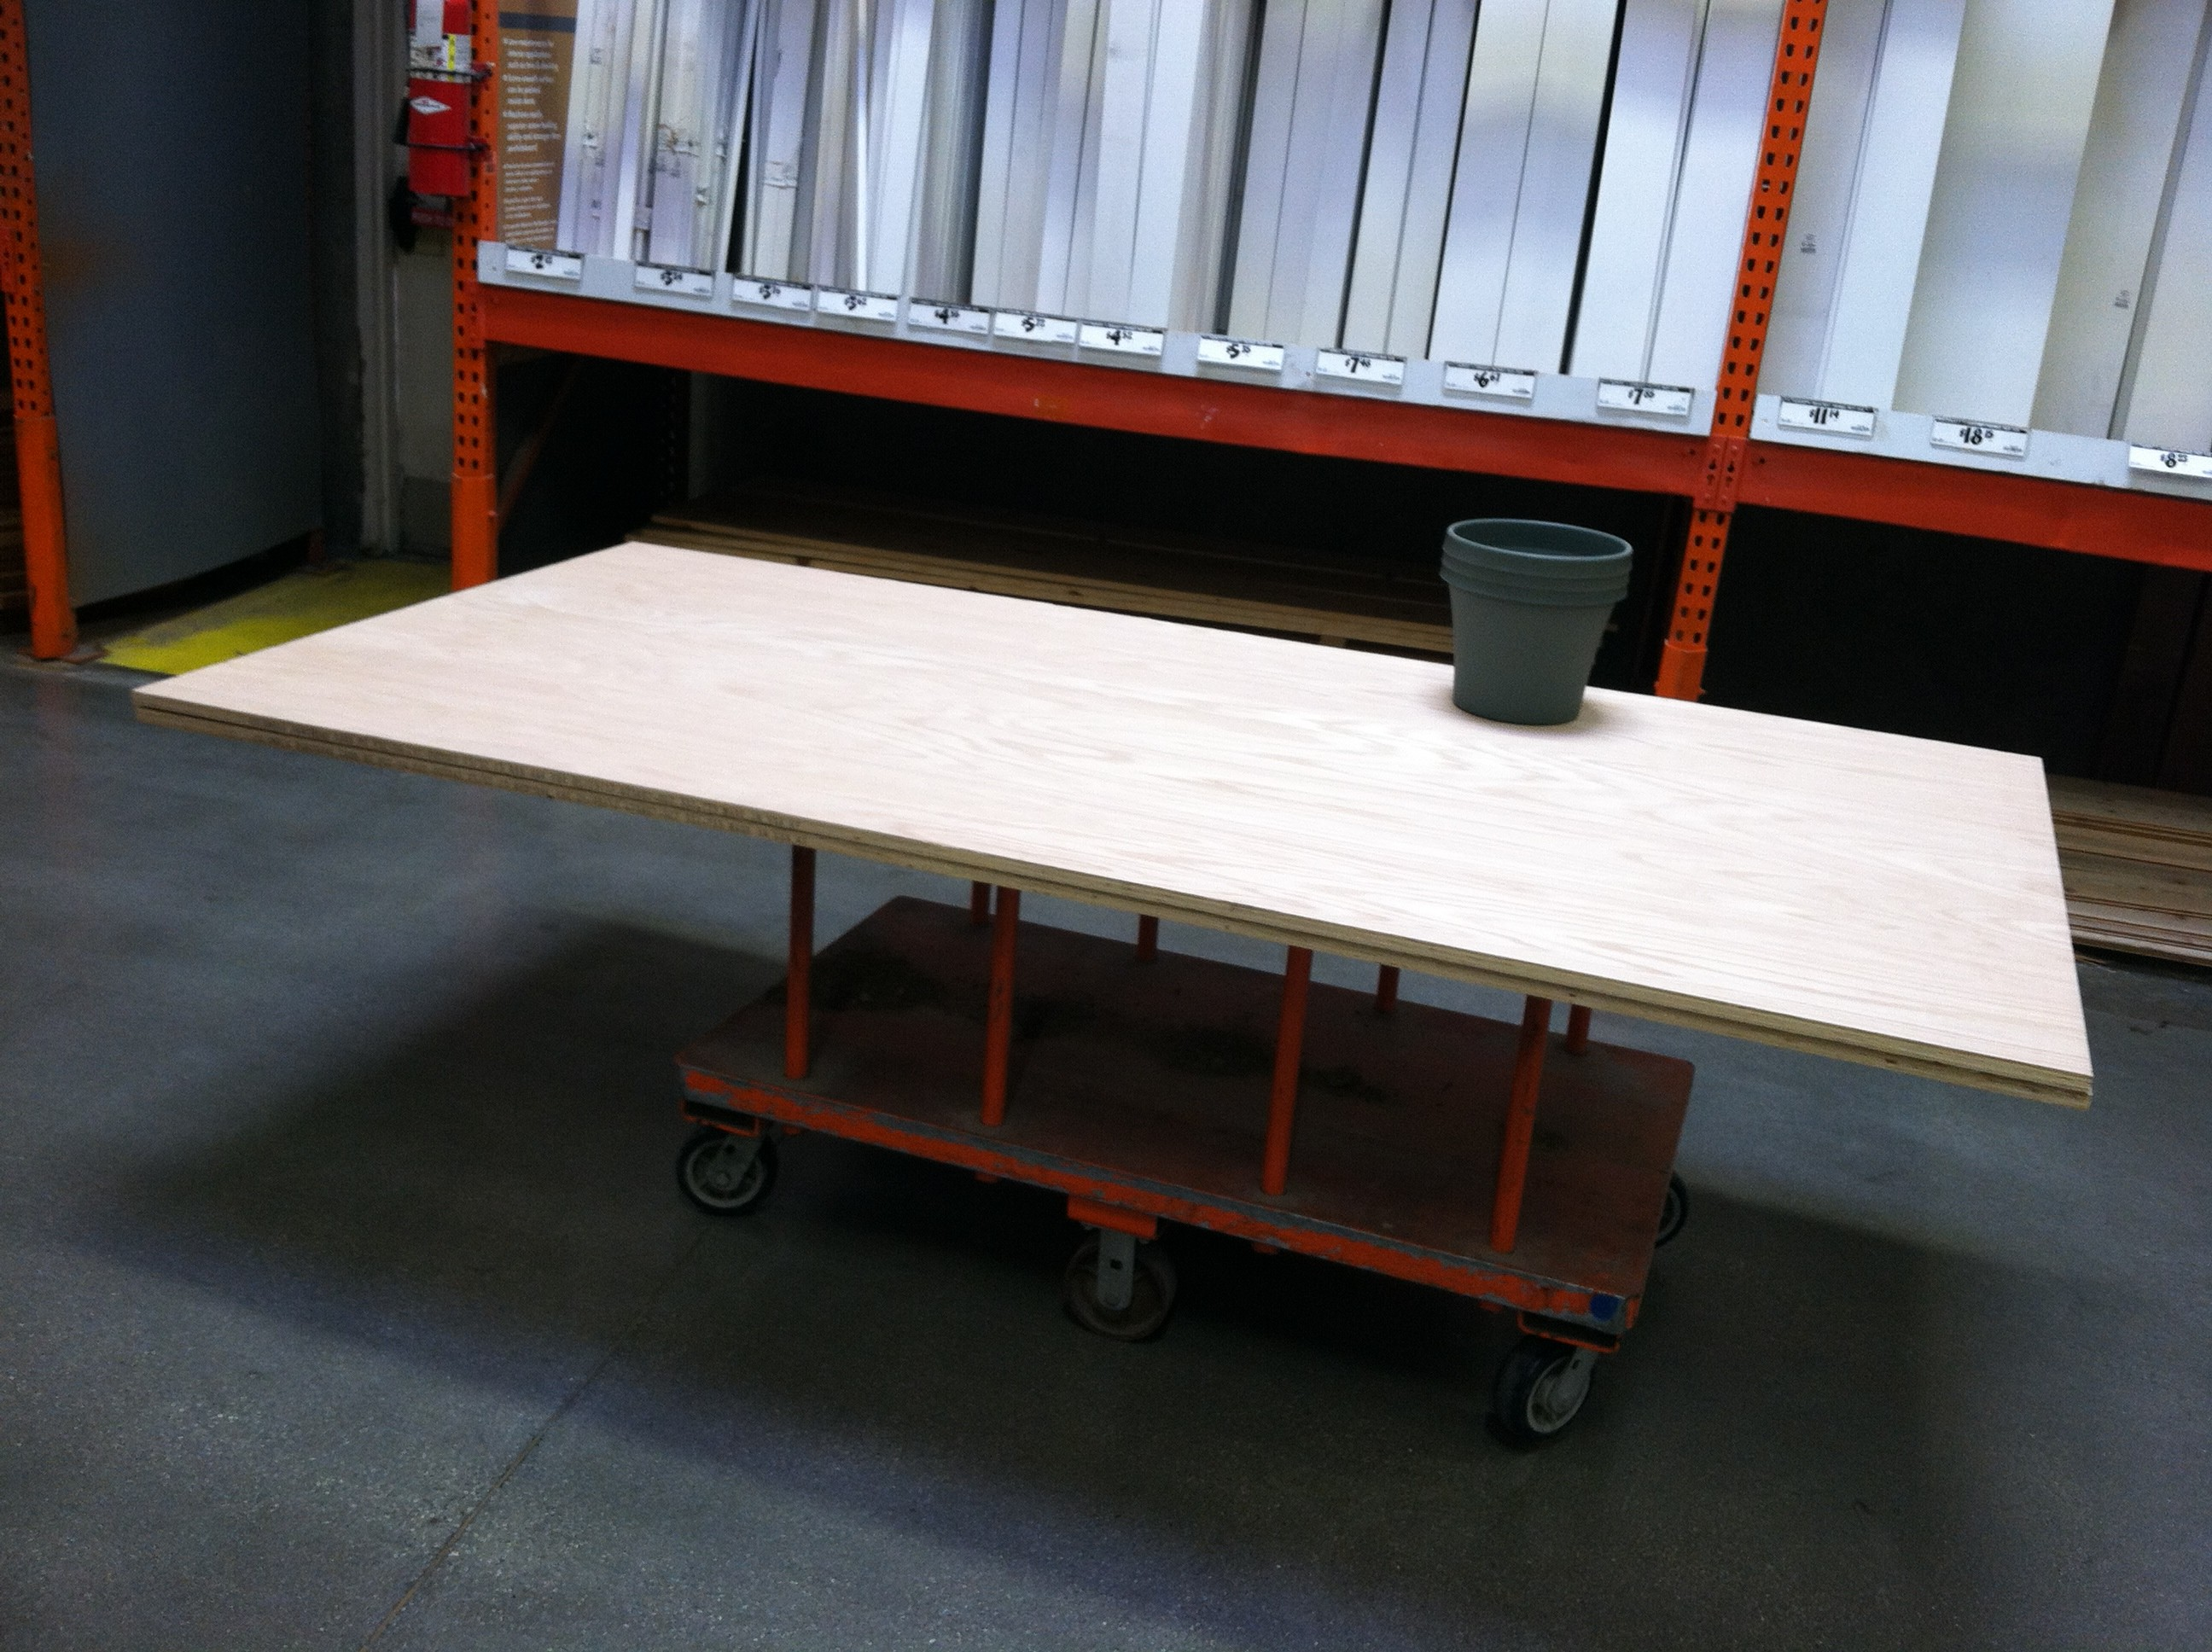 4x8 Plywood At Home Depot For Record Storage Shelf